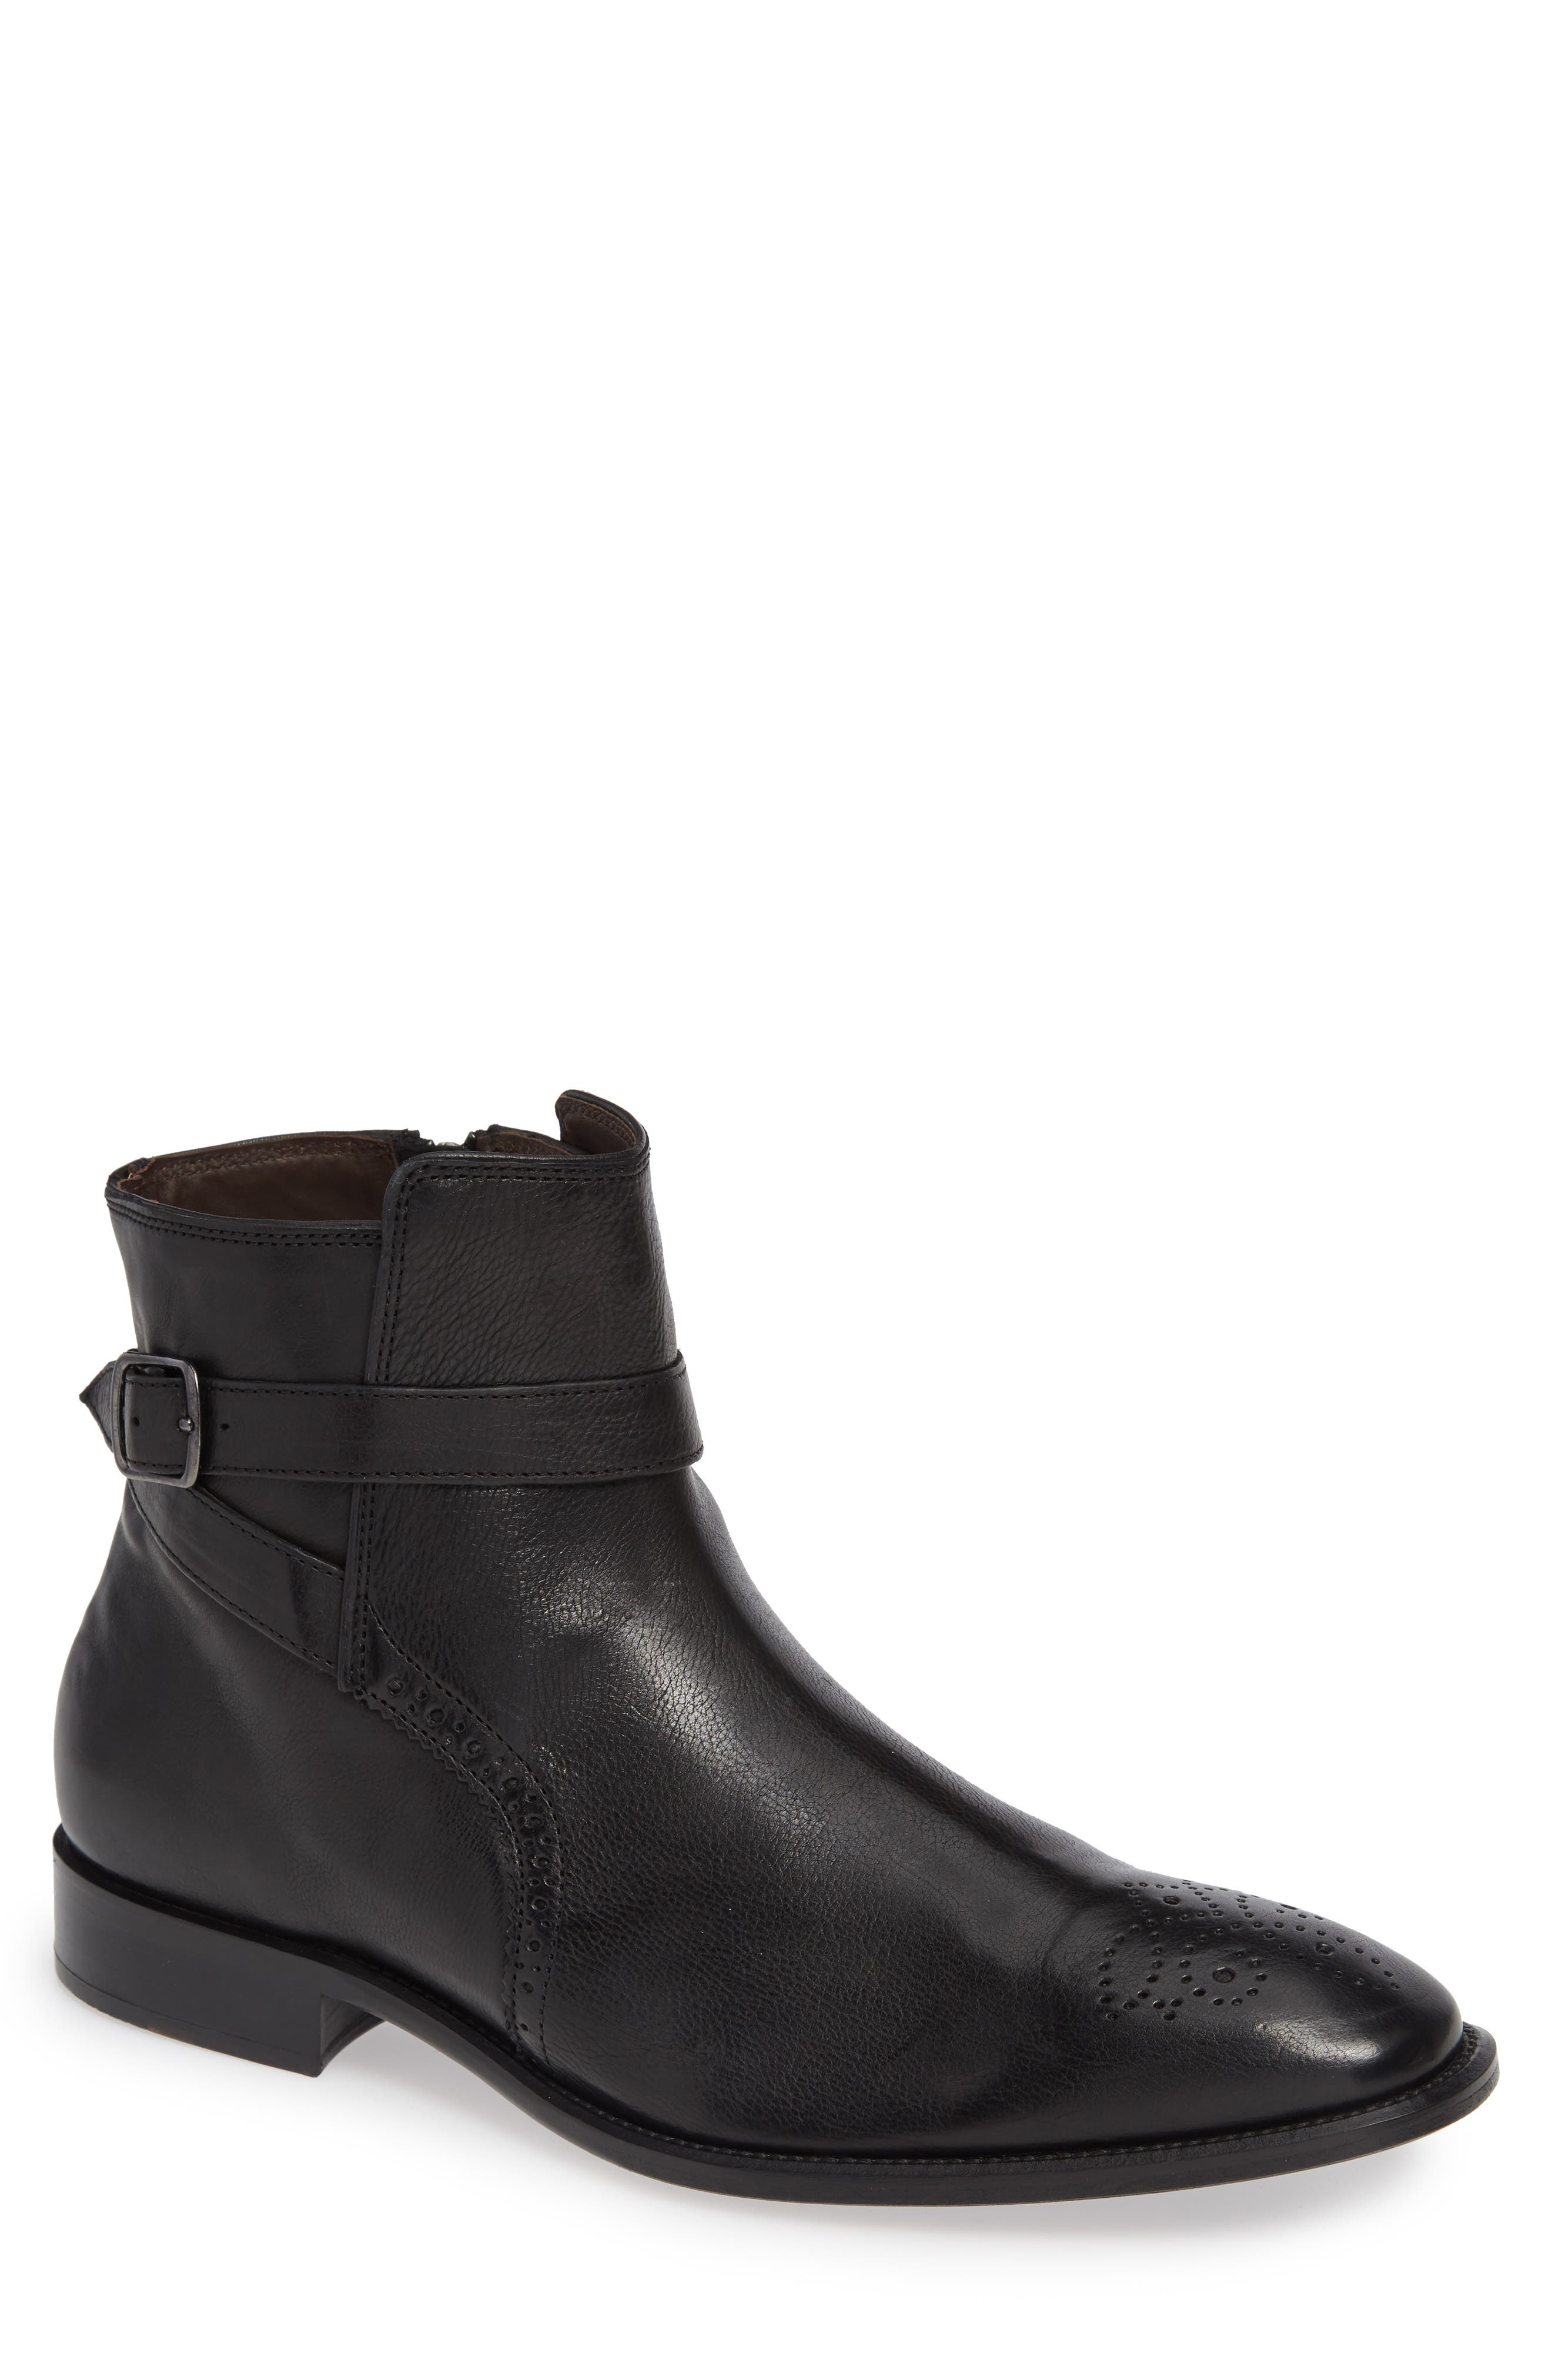 Maxwell Zip Boot,                         Main,                         color, BLACK LEATHER